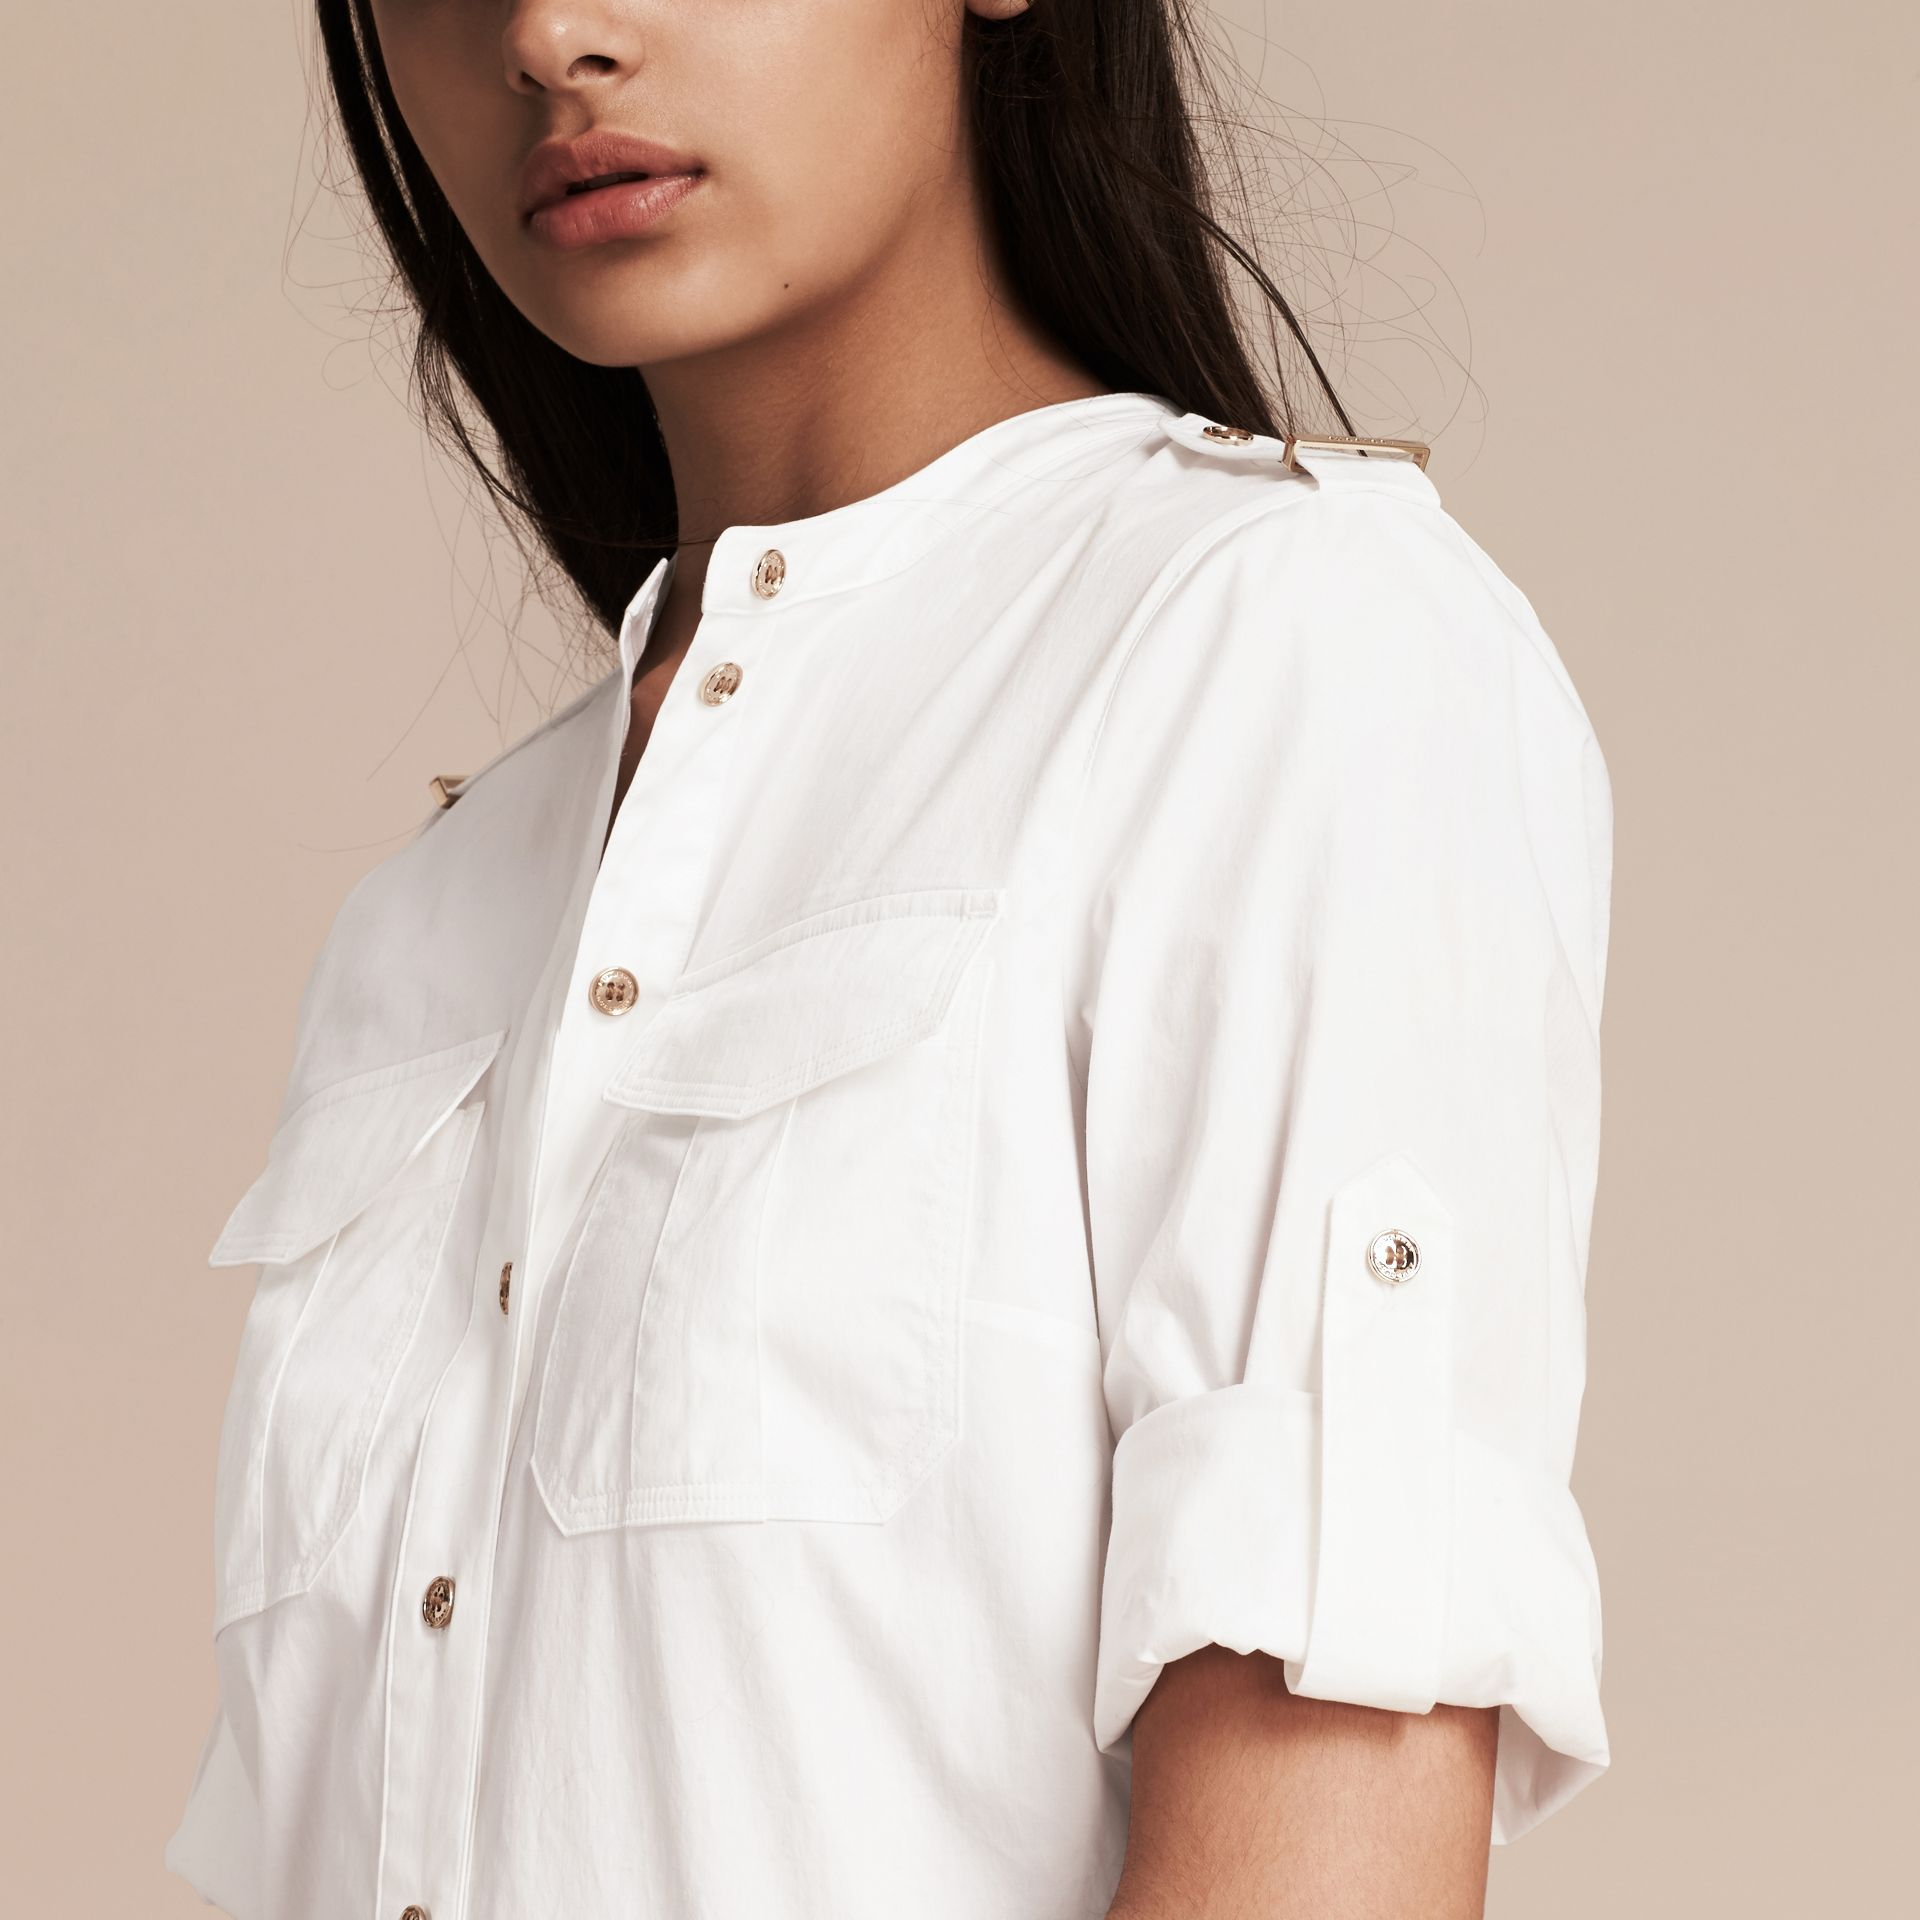 White Military-inspired Cotton Blend Shirt Dress White - gallery image 5